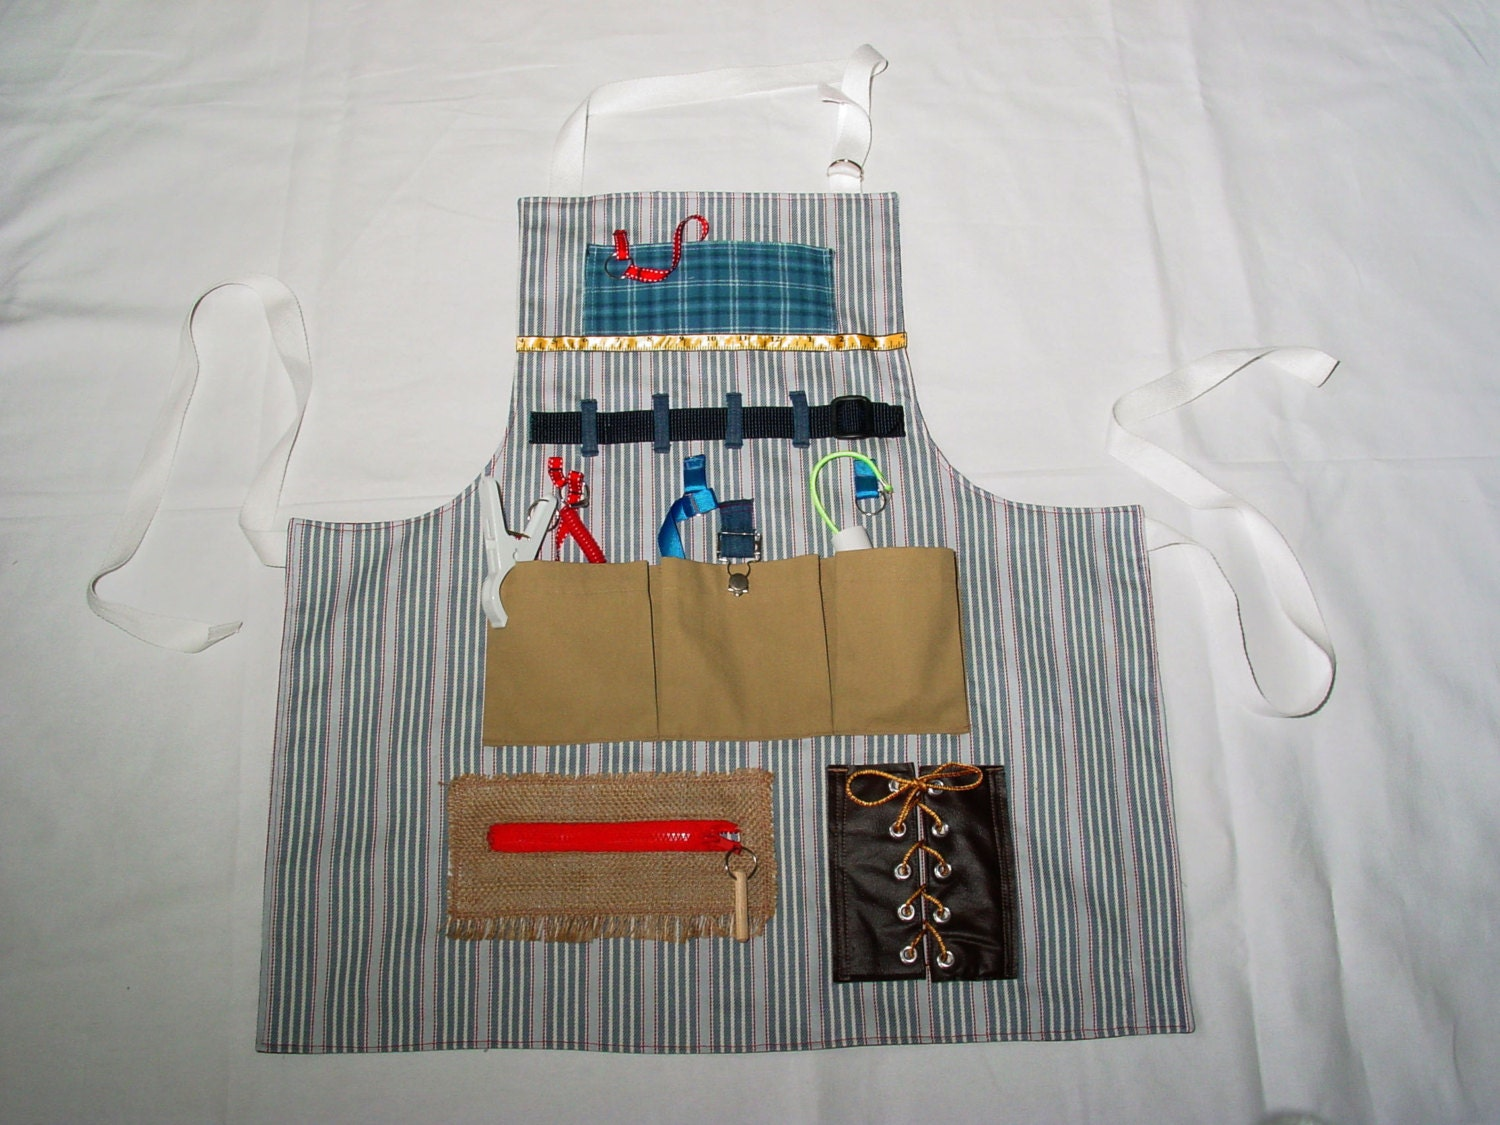 Busy Fingers Fidget Apron Tactile Bright Amp By Endearingdignite